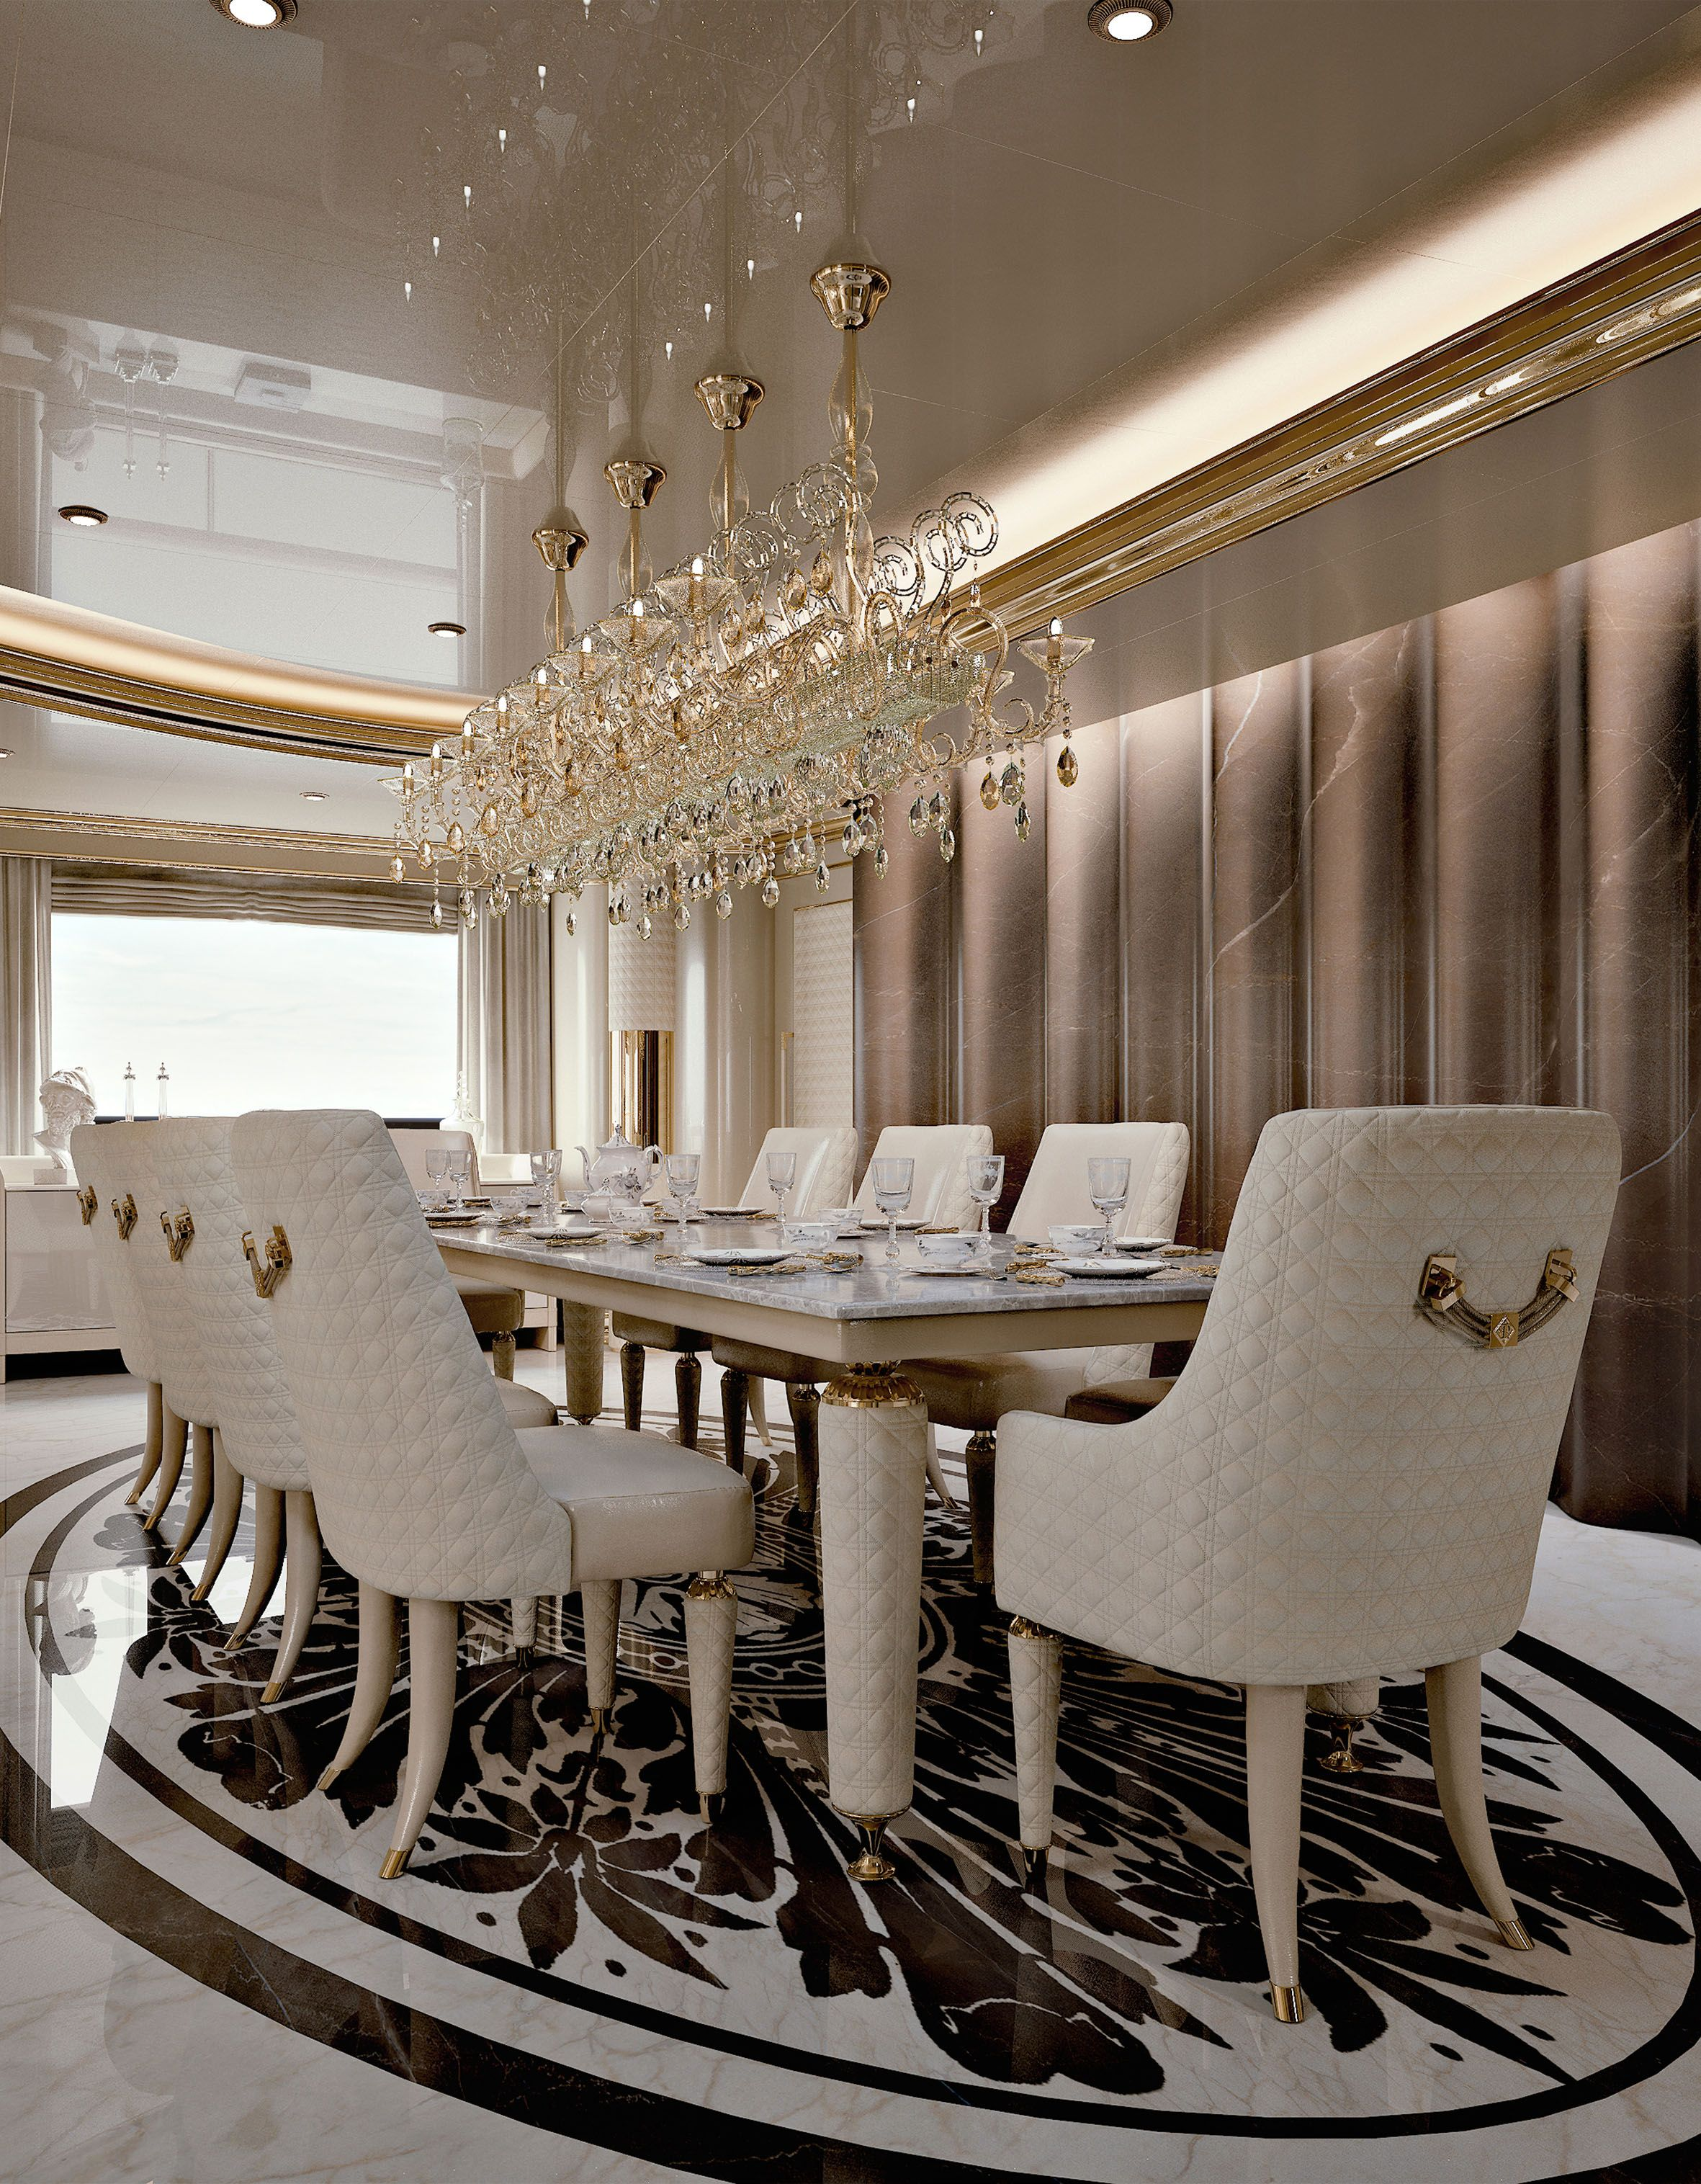 Numero Tre Collection Http://www.turri.it Luxury Yacht Dining Room